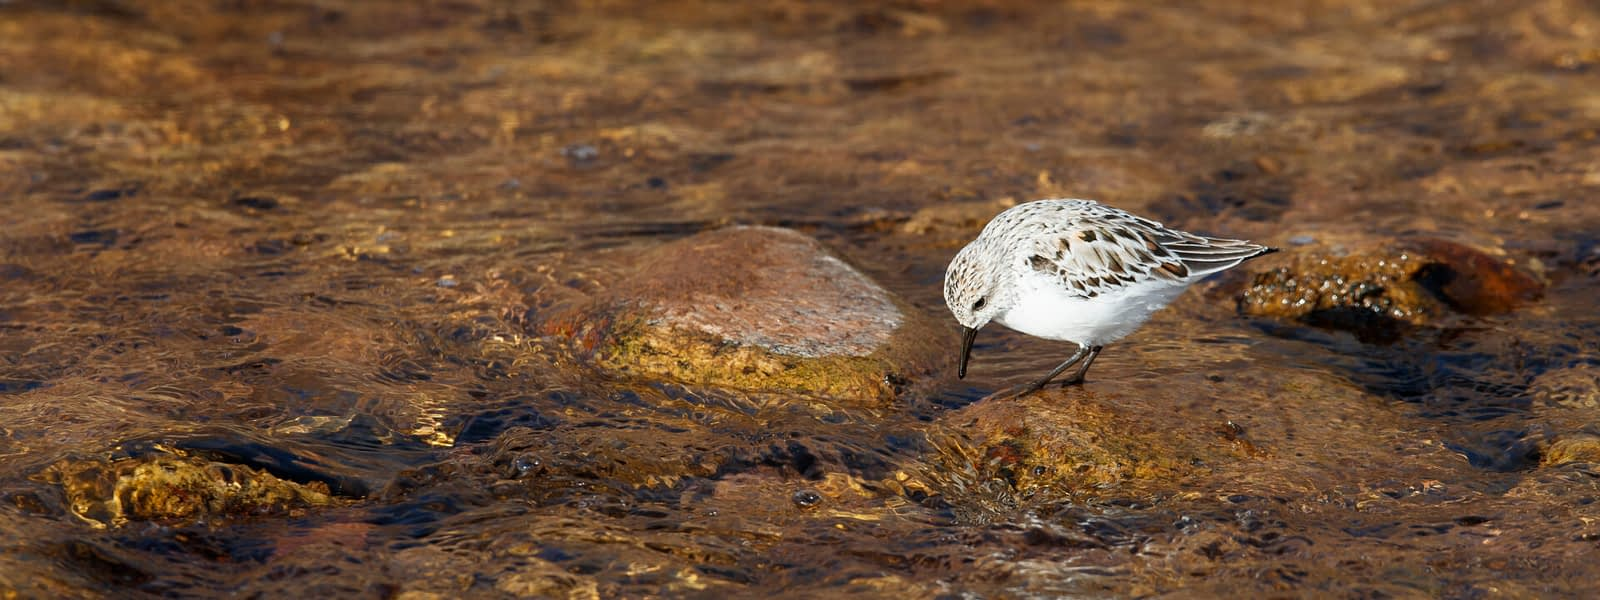 Sanderling (Calidris alba) foraging on river stones, Brush Creek Valley Open Space, Eagle County, Colorado, Todd Winslow Pierce